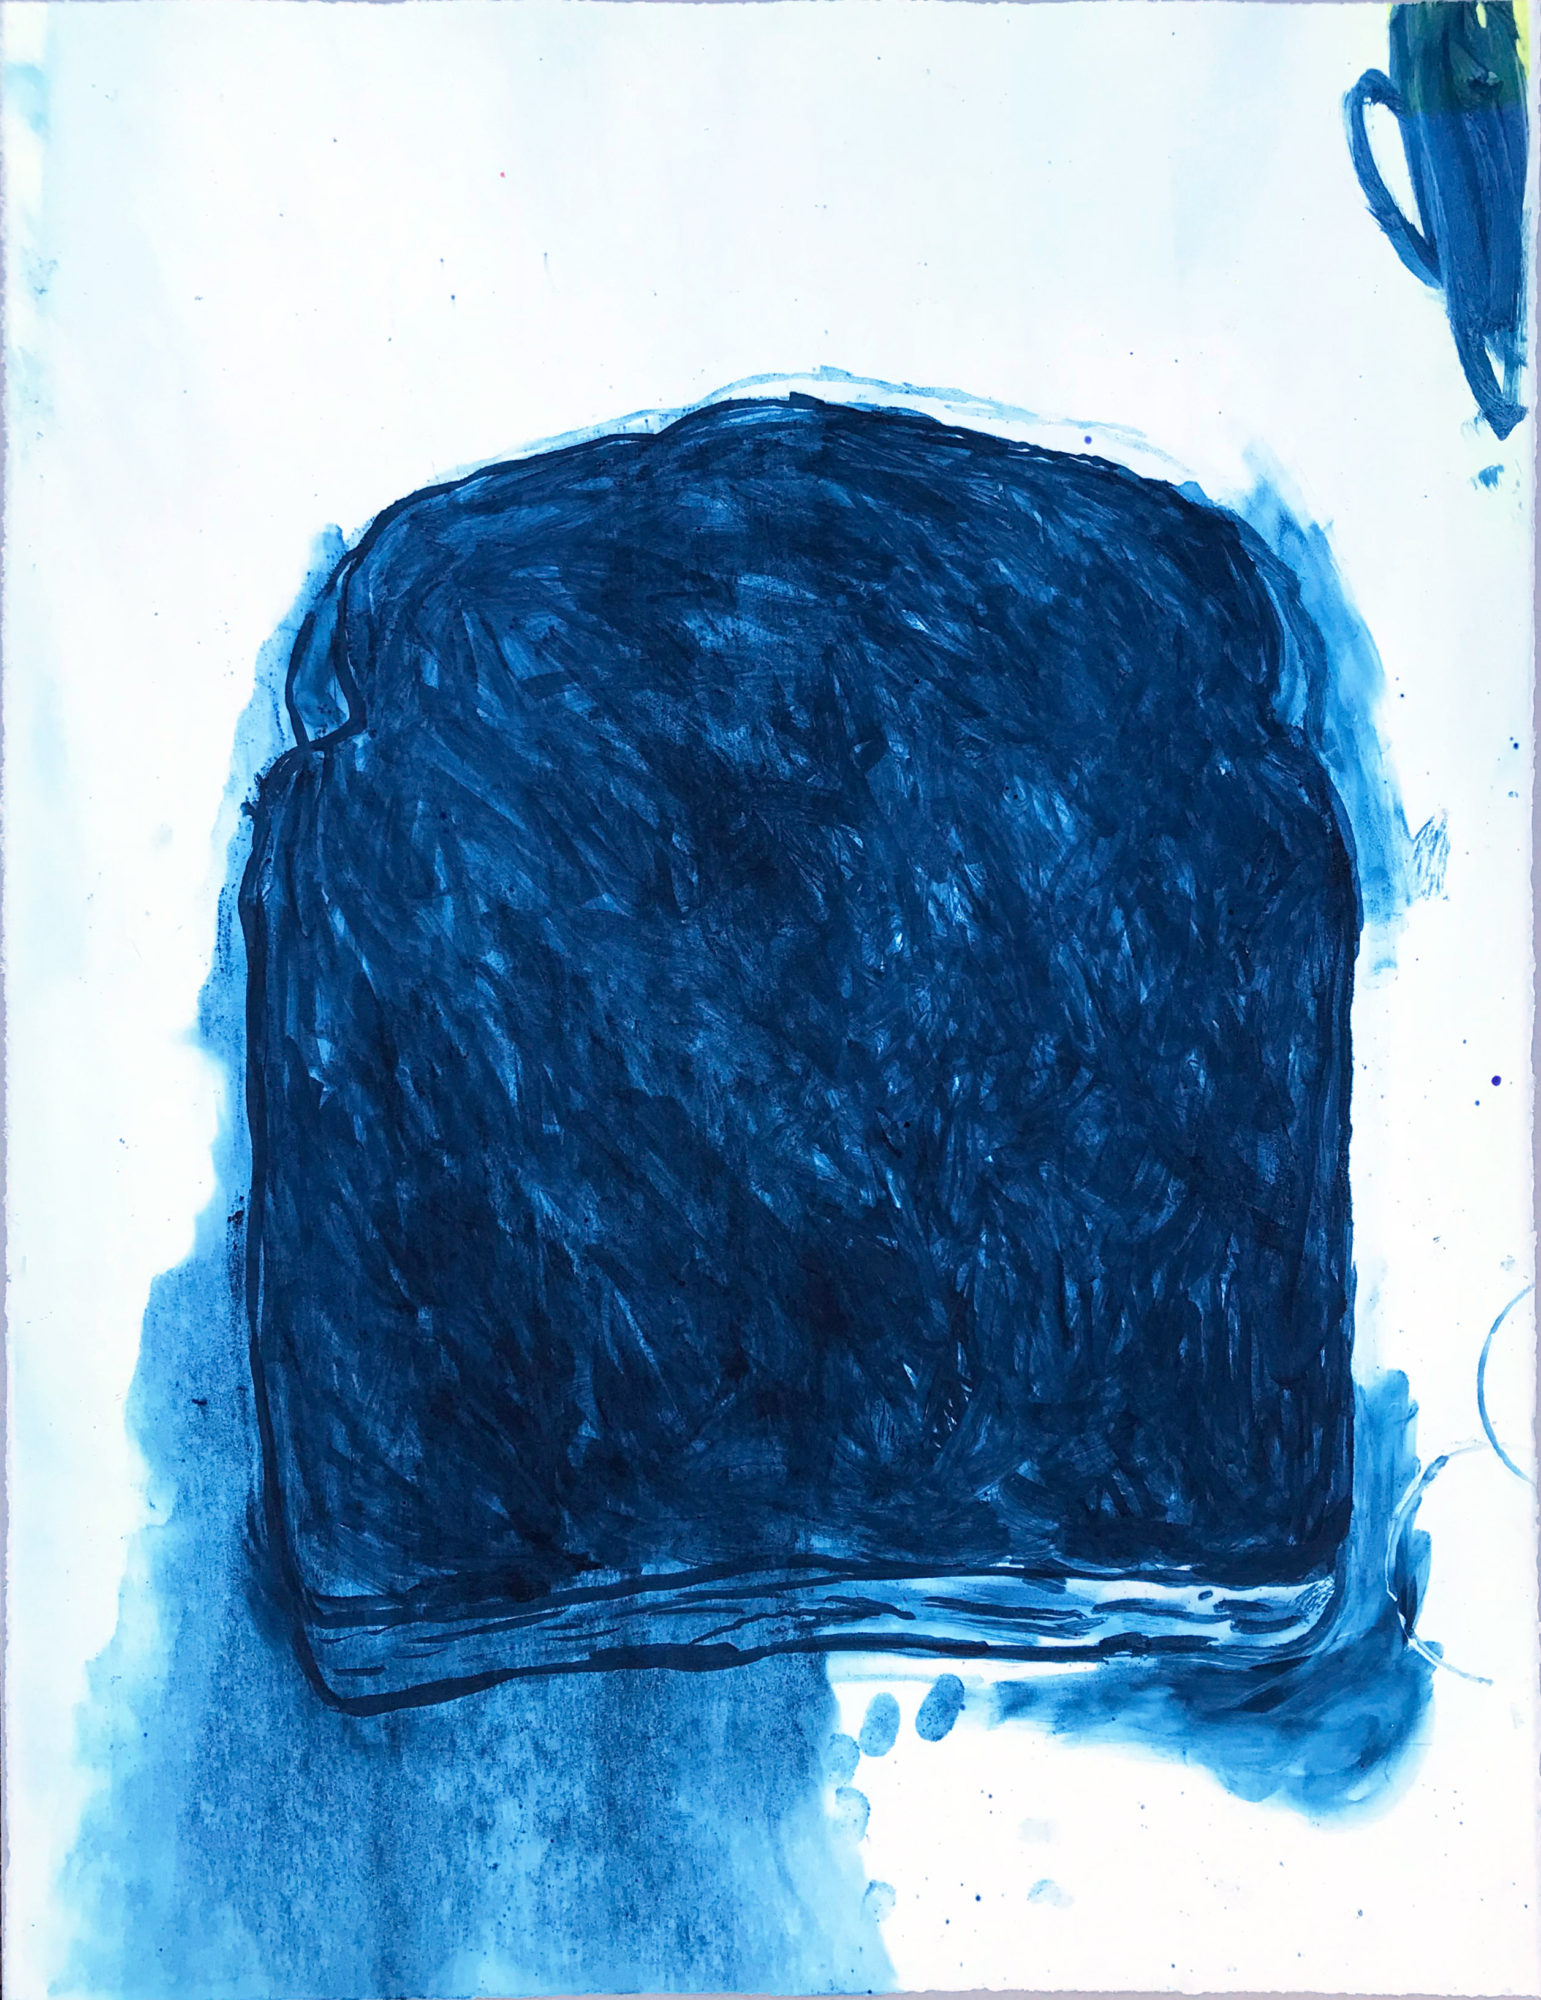 A Slice of Burnt Toast #Blue